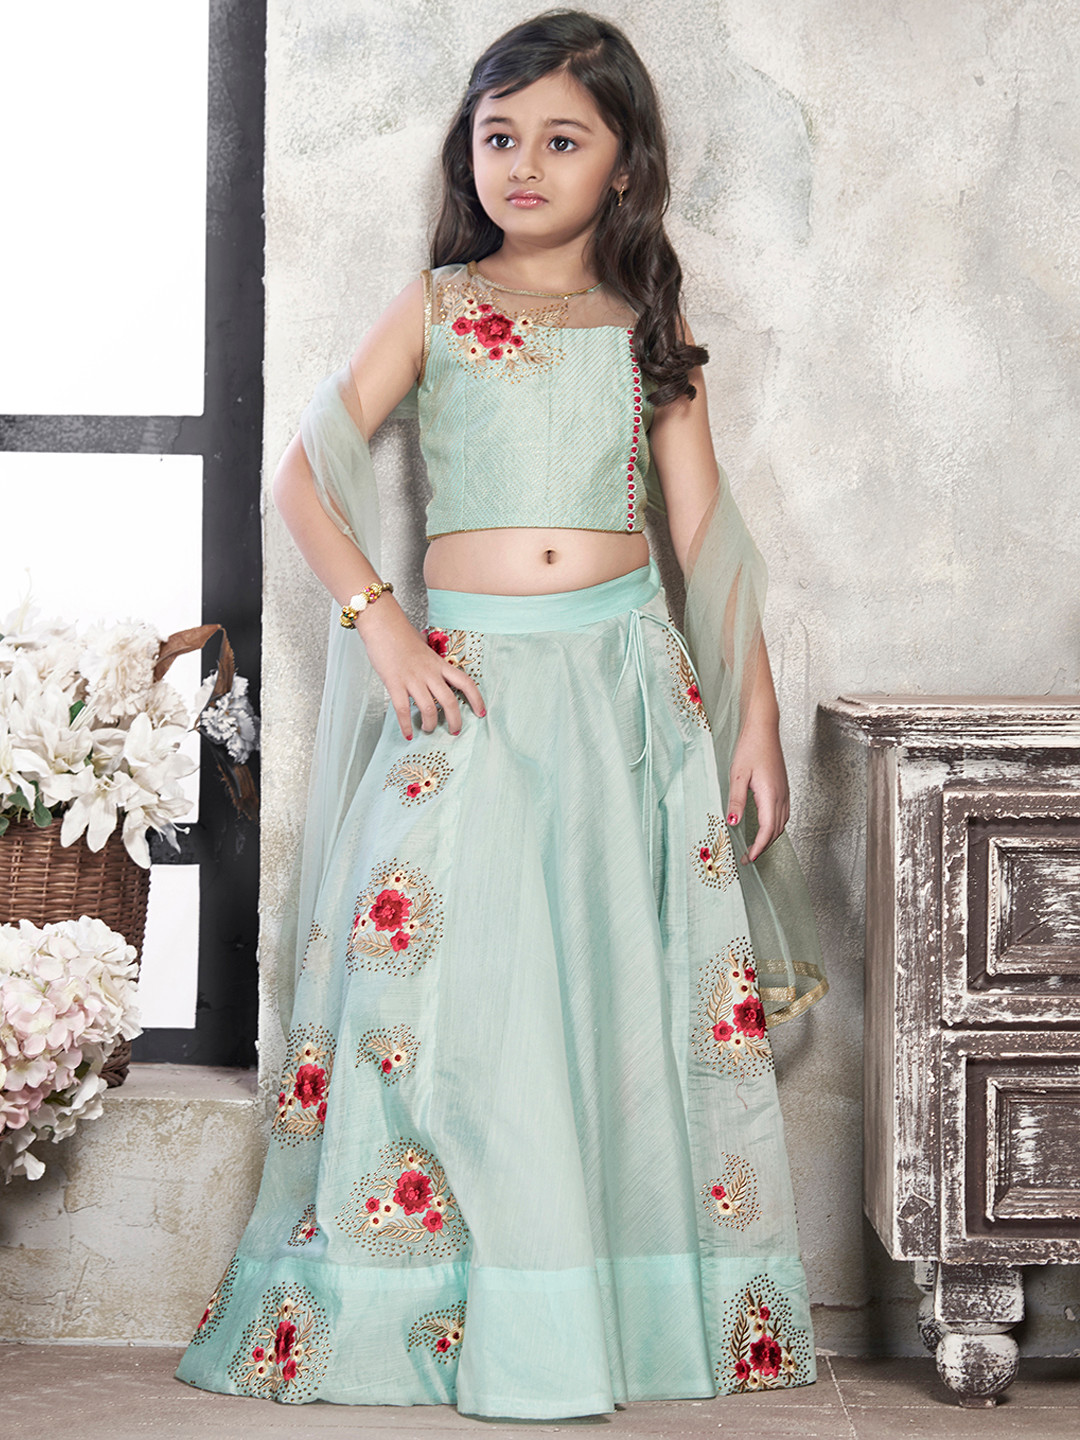 Lovely Girl Suits For Wedding Gallery - Wedding Ideas - memiocall.com